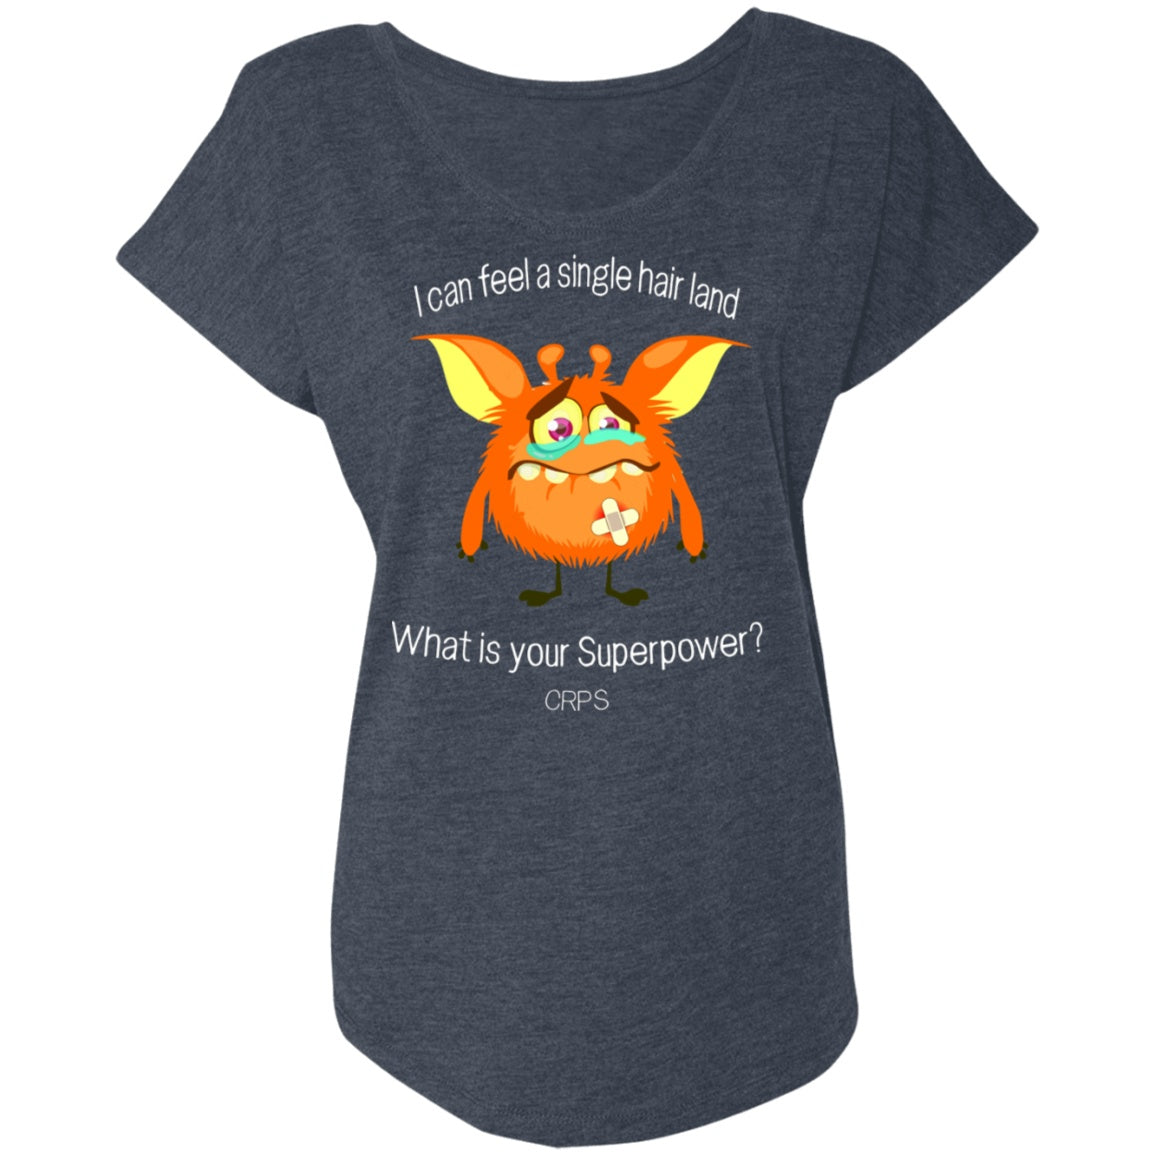 CRPS Superpower Sonny Shirts, Tank And Hoodie - The Unchargeables